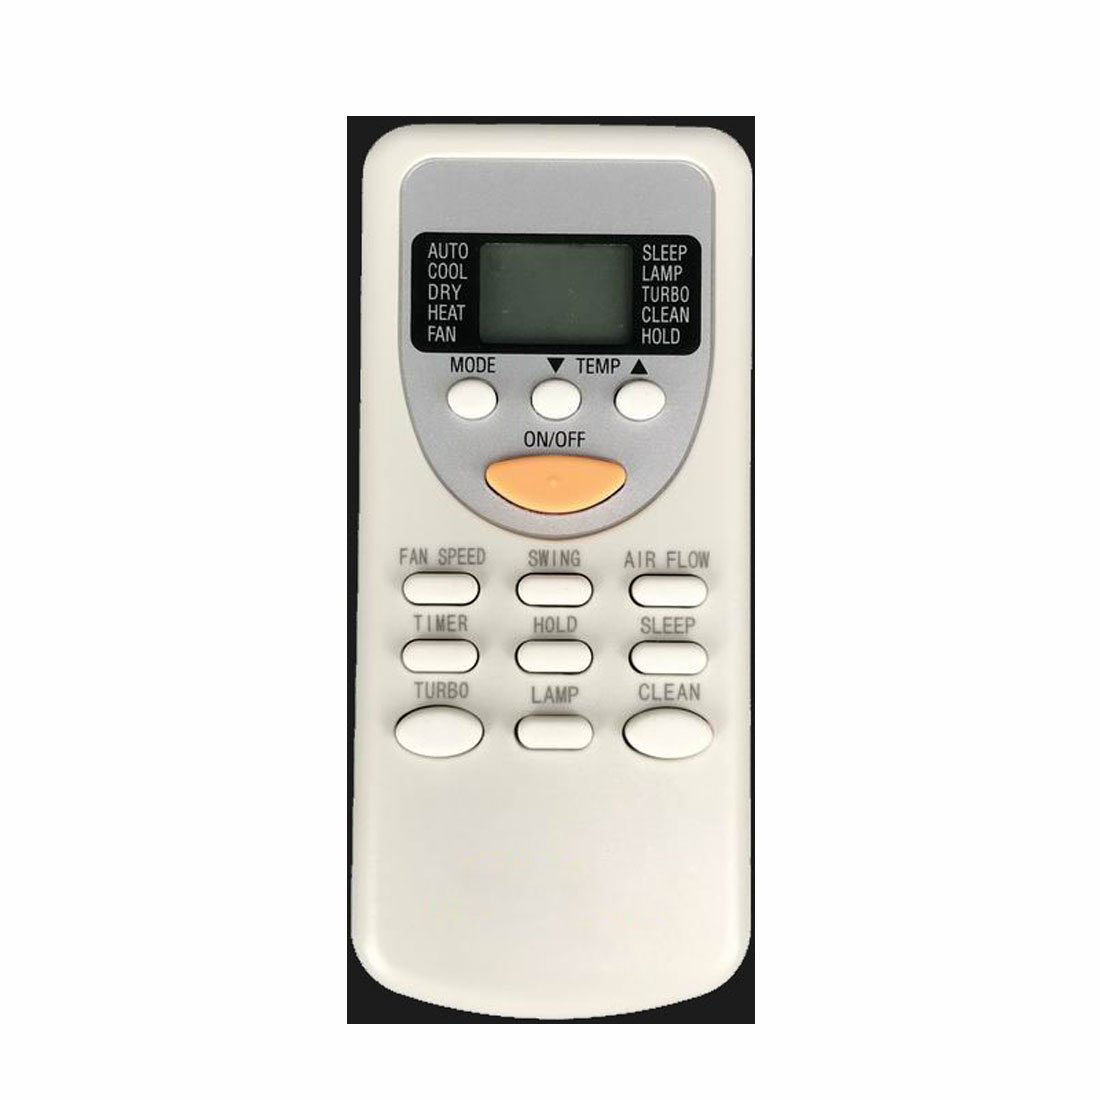 Meide ZH/JT-03 CHIGO Replace Remote Control For CHIGO AC A/C AIR Conditioner Remote Controller ZH/JT-01 ZHJT03